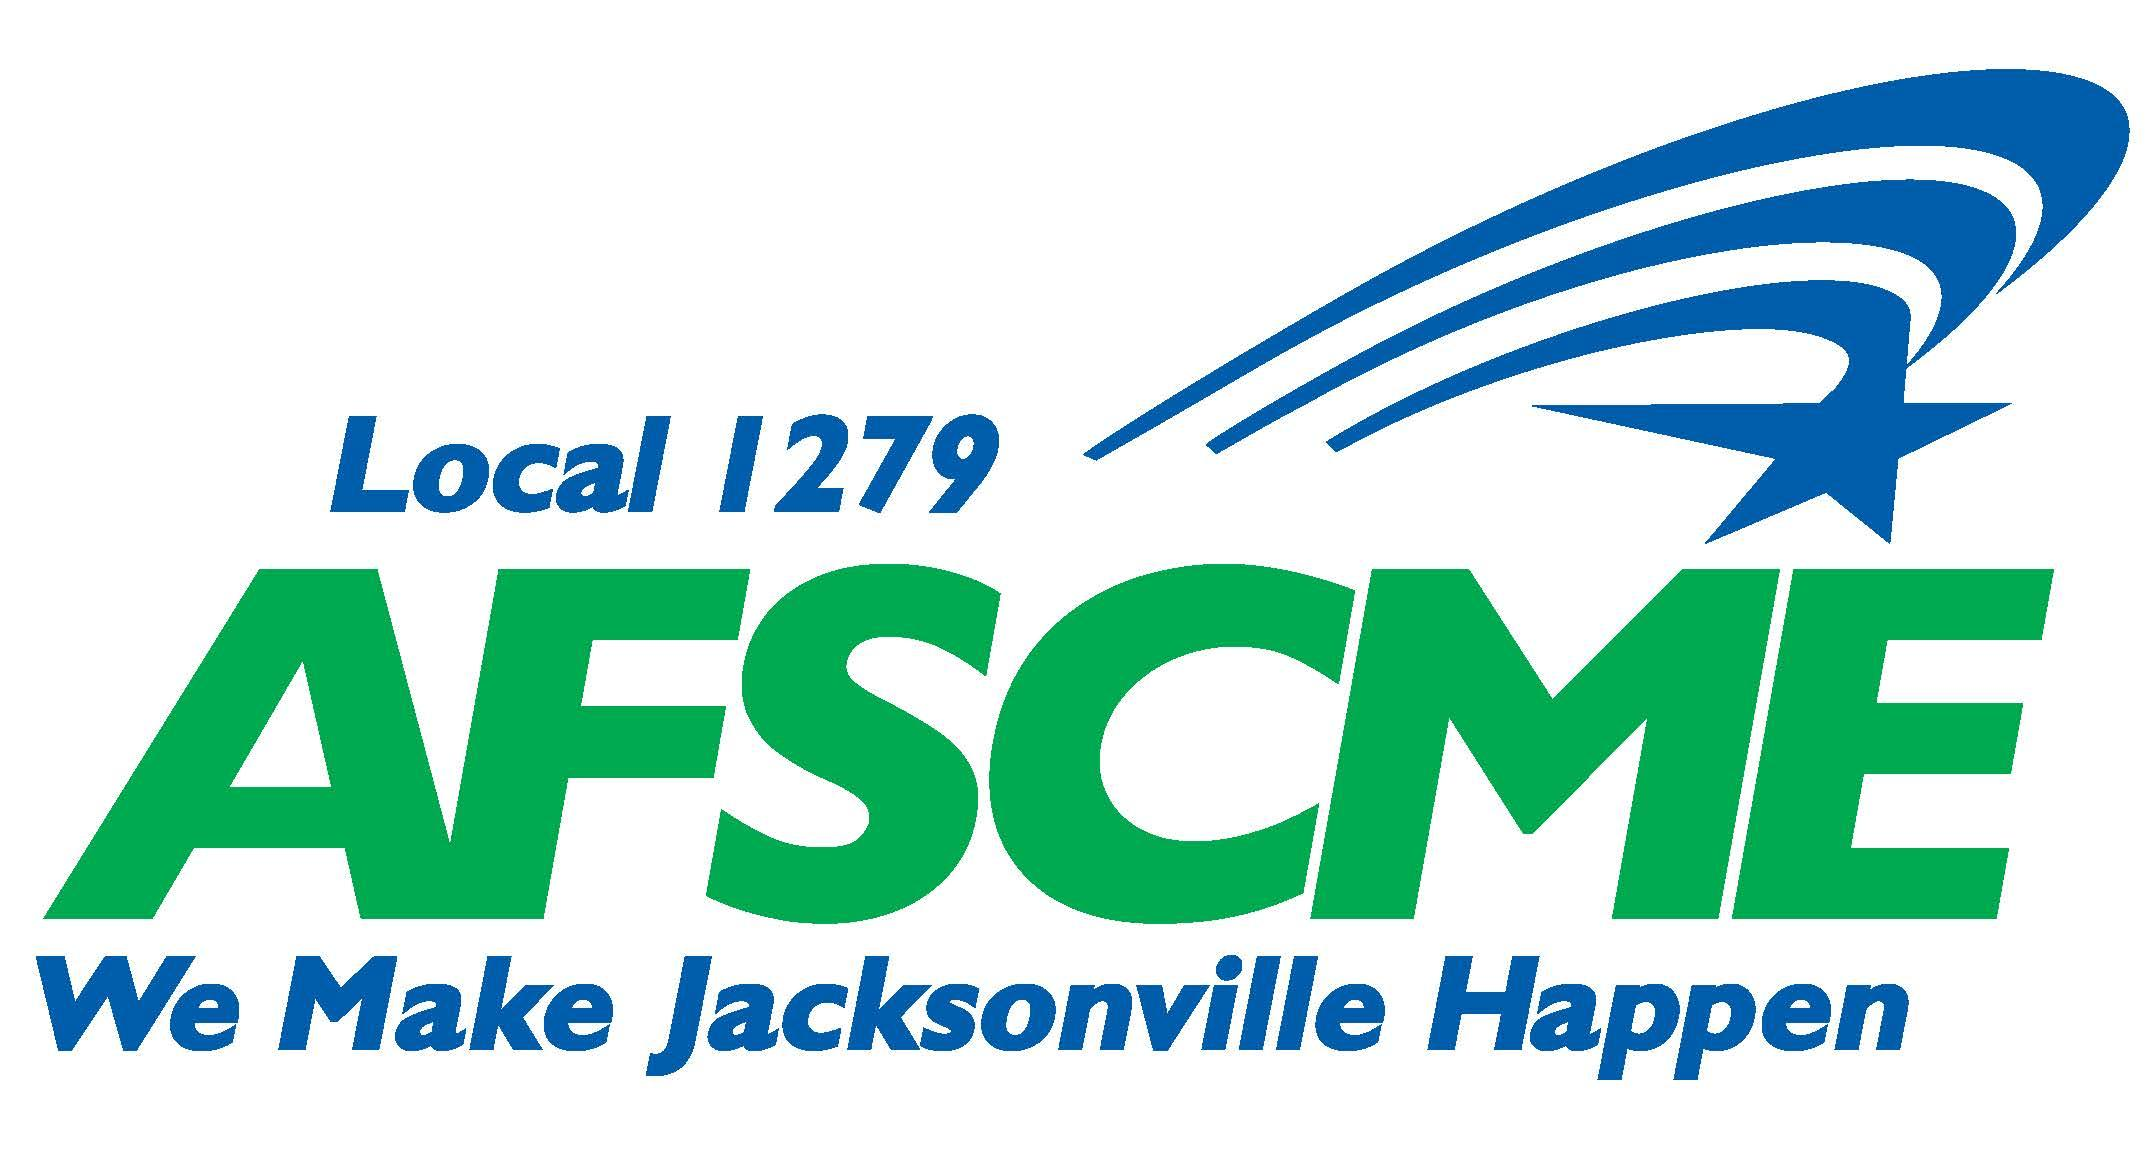 Local 1279 Contract 2017-2020 | AFSCME Florida